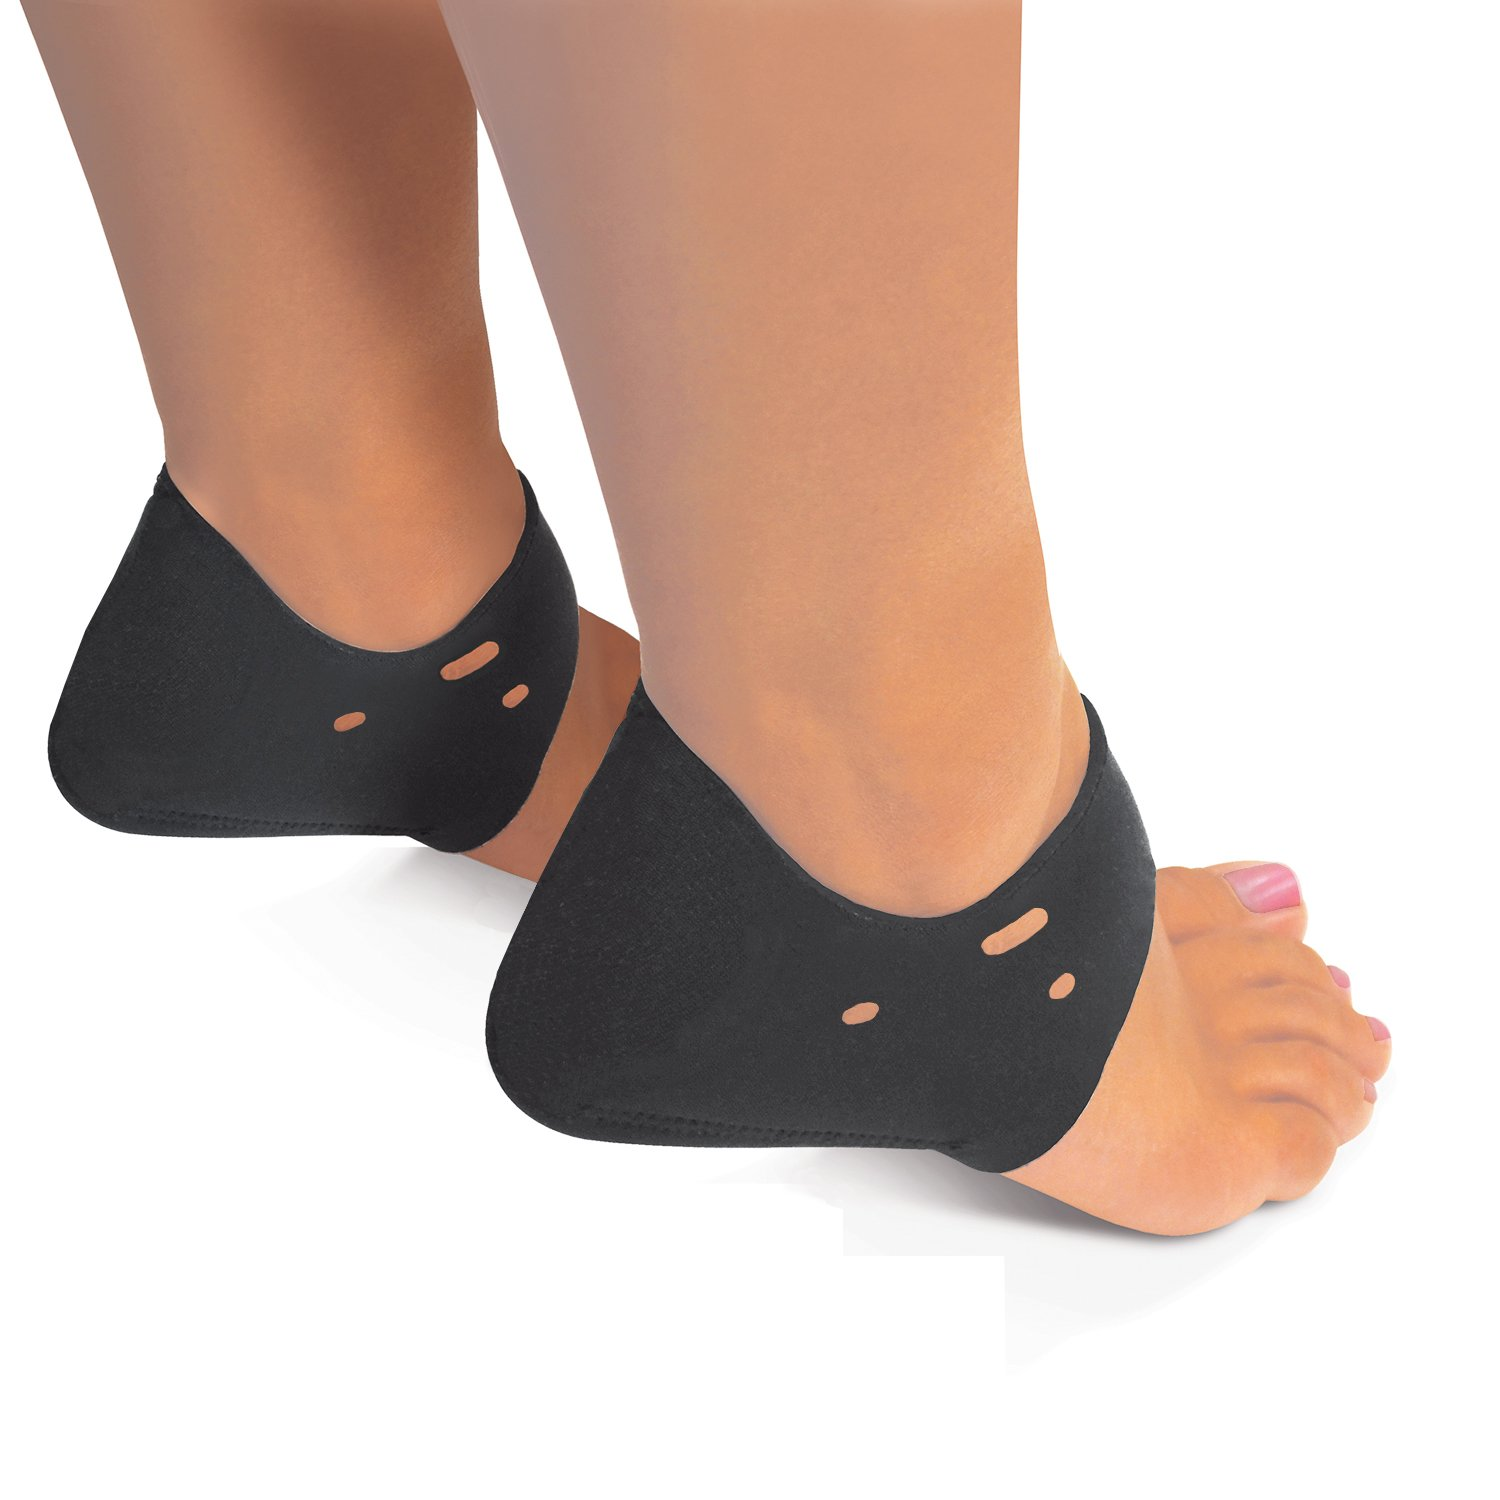 Beautyko Shock Absorbing Plantar Fasciitis Therapy Wraps, 90 Count by BEAUTYKO (Image #2)